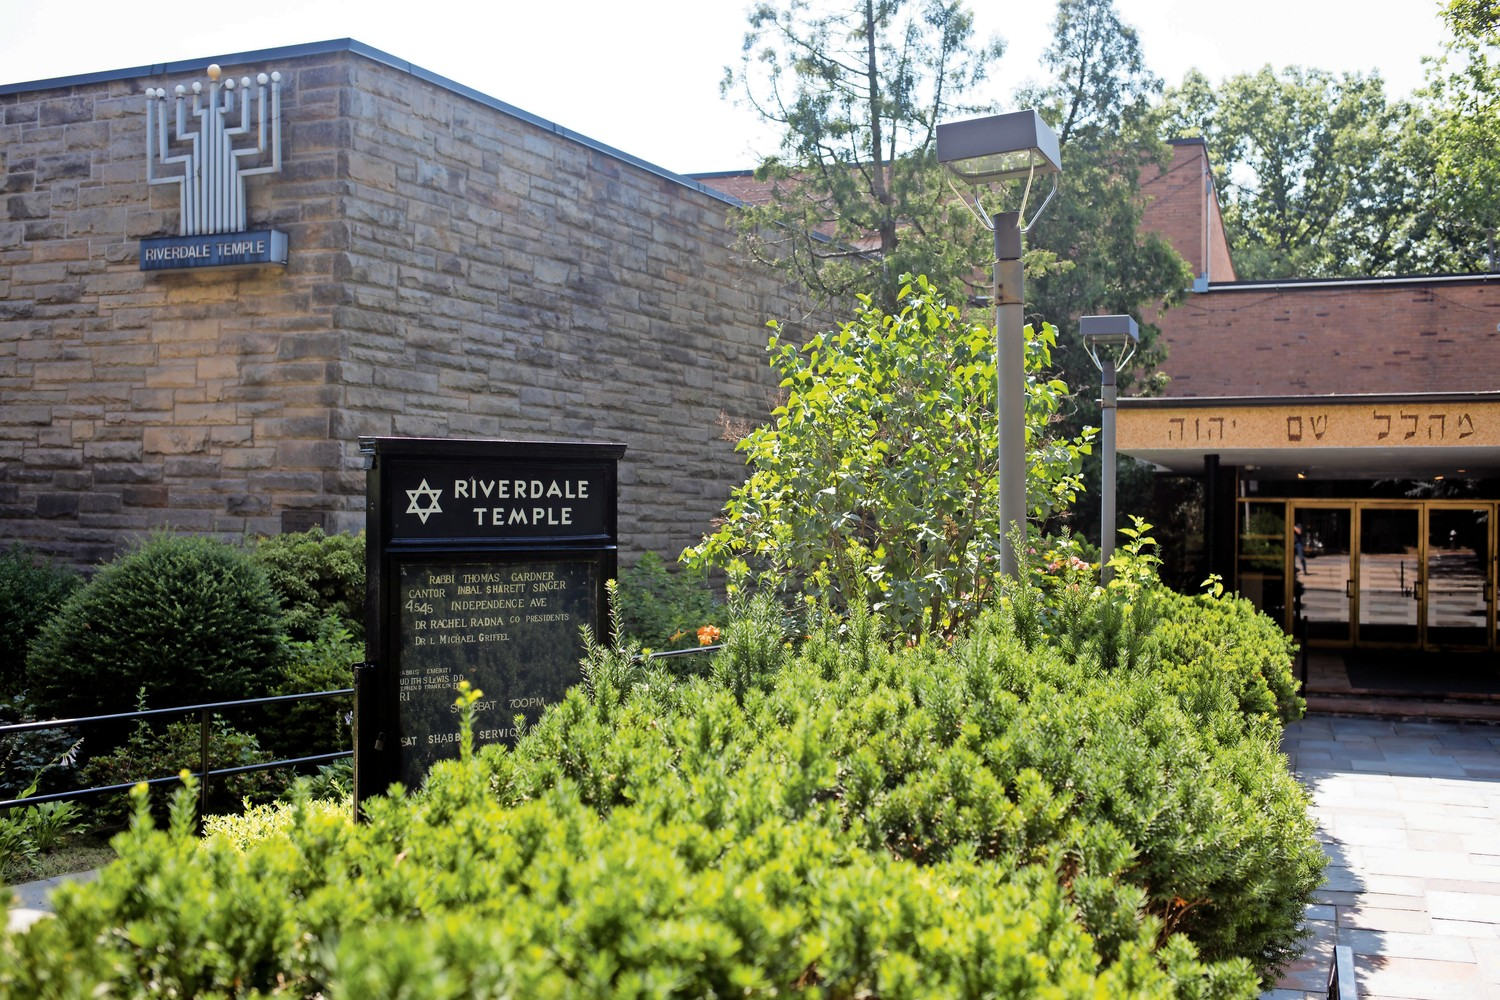 The Riverdale Temple charged Community Board 8 $1,300 to host their four-hour land use meeting there on June 7.